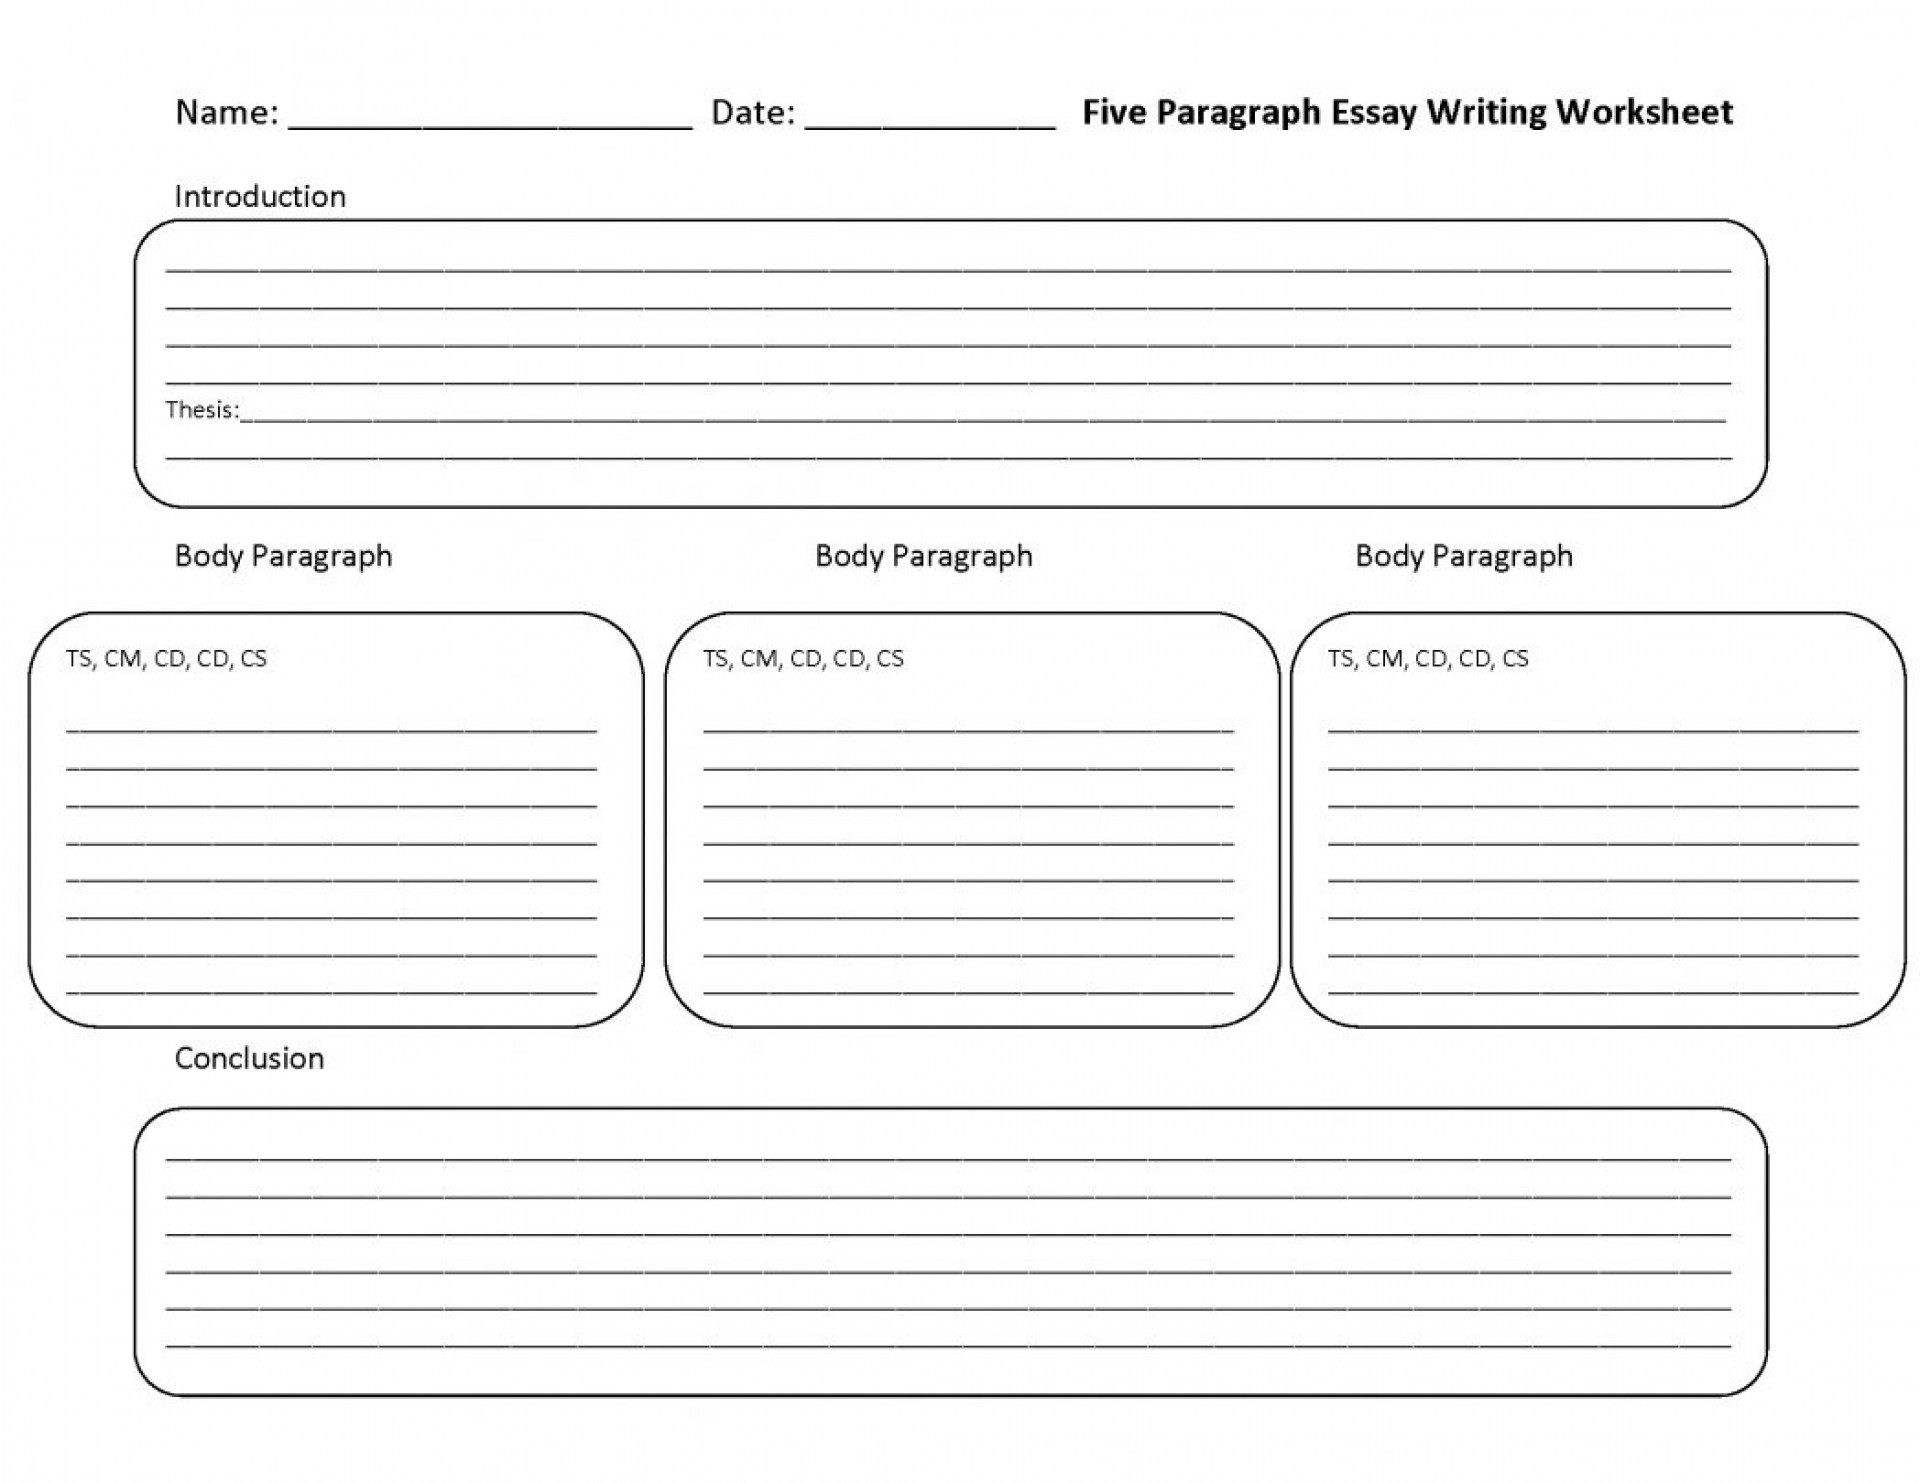 022 Essay Graphic Organizer Paragraph Poemsrom Co For Writing Literary Essays Worksheets Throughout Organizers College Informative Free Persuasive Best Descriptive Argumentative Incredible Middle School Pdf 1920